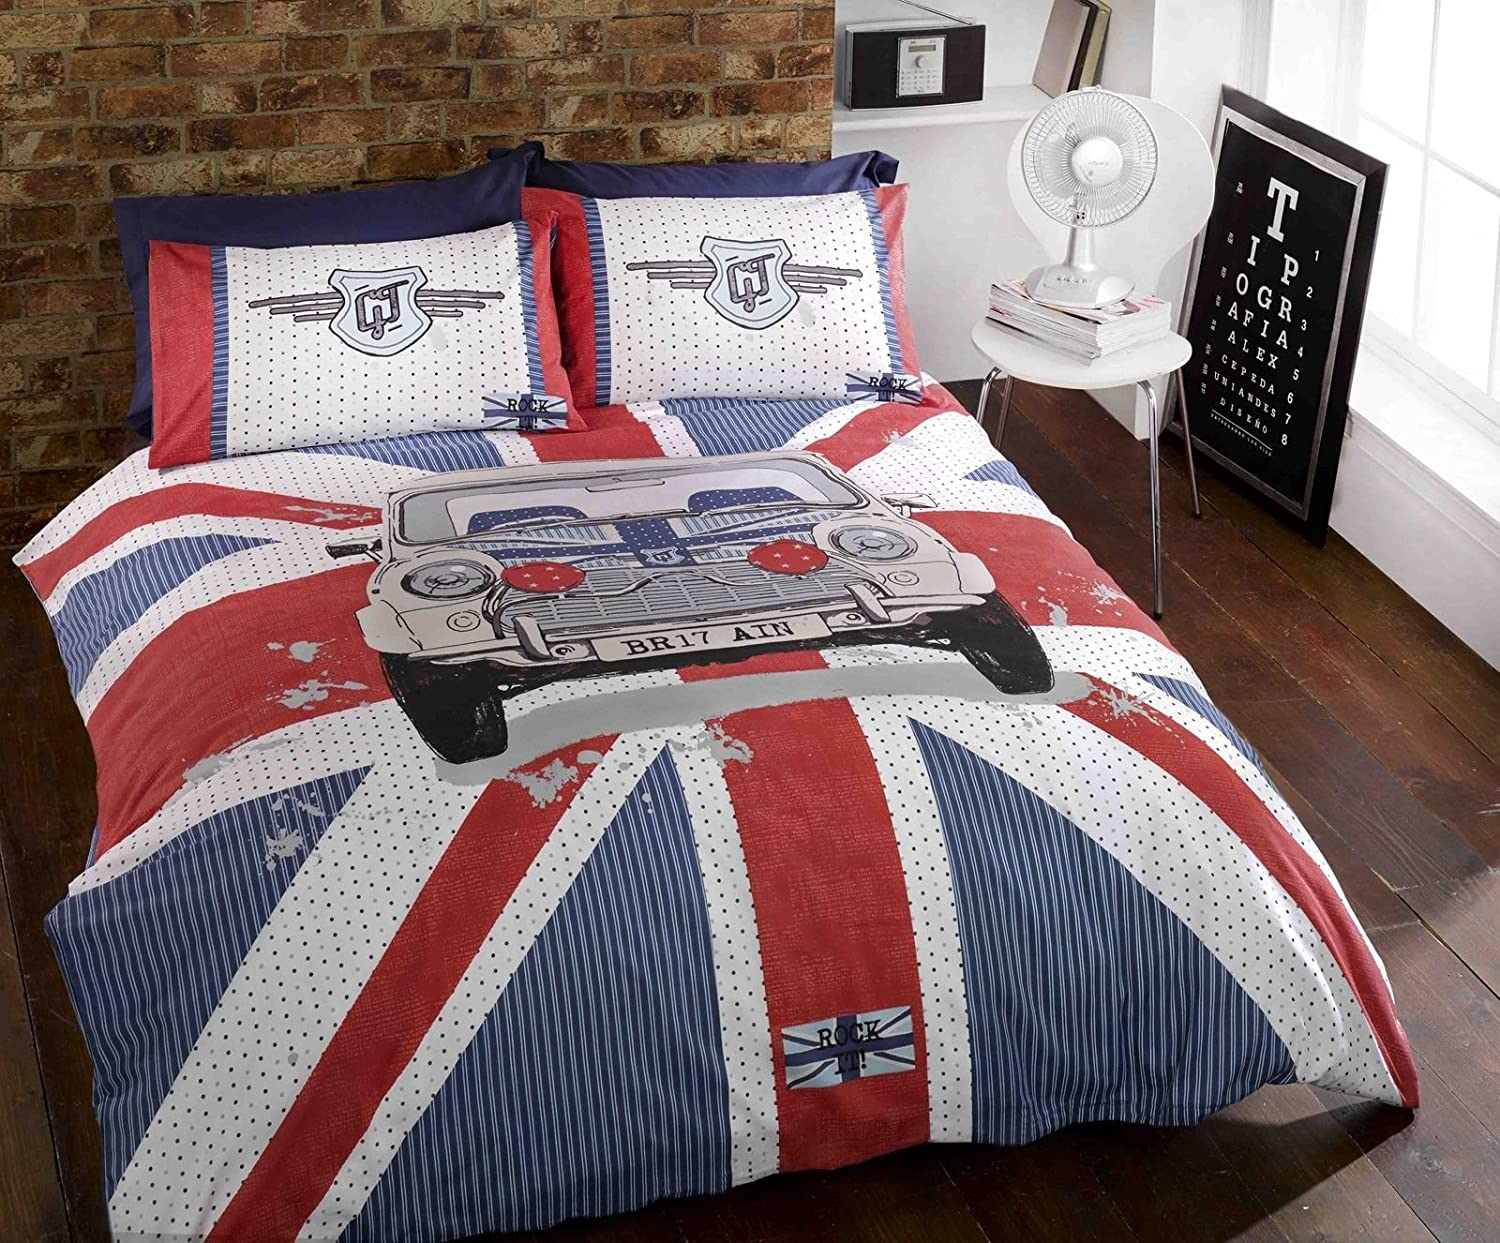 Home amp garden gt home improvement gt building amp hardware gt wallpaper - Mini Gt Car Union Jack Stripe Blue Red White Grey Duvet Cover Quilt Bedding Set Single Bed Size Hallways Amazon Co Uk Kitchen Home